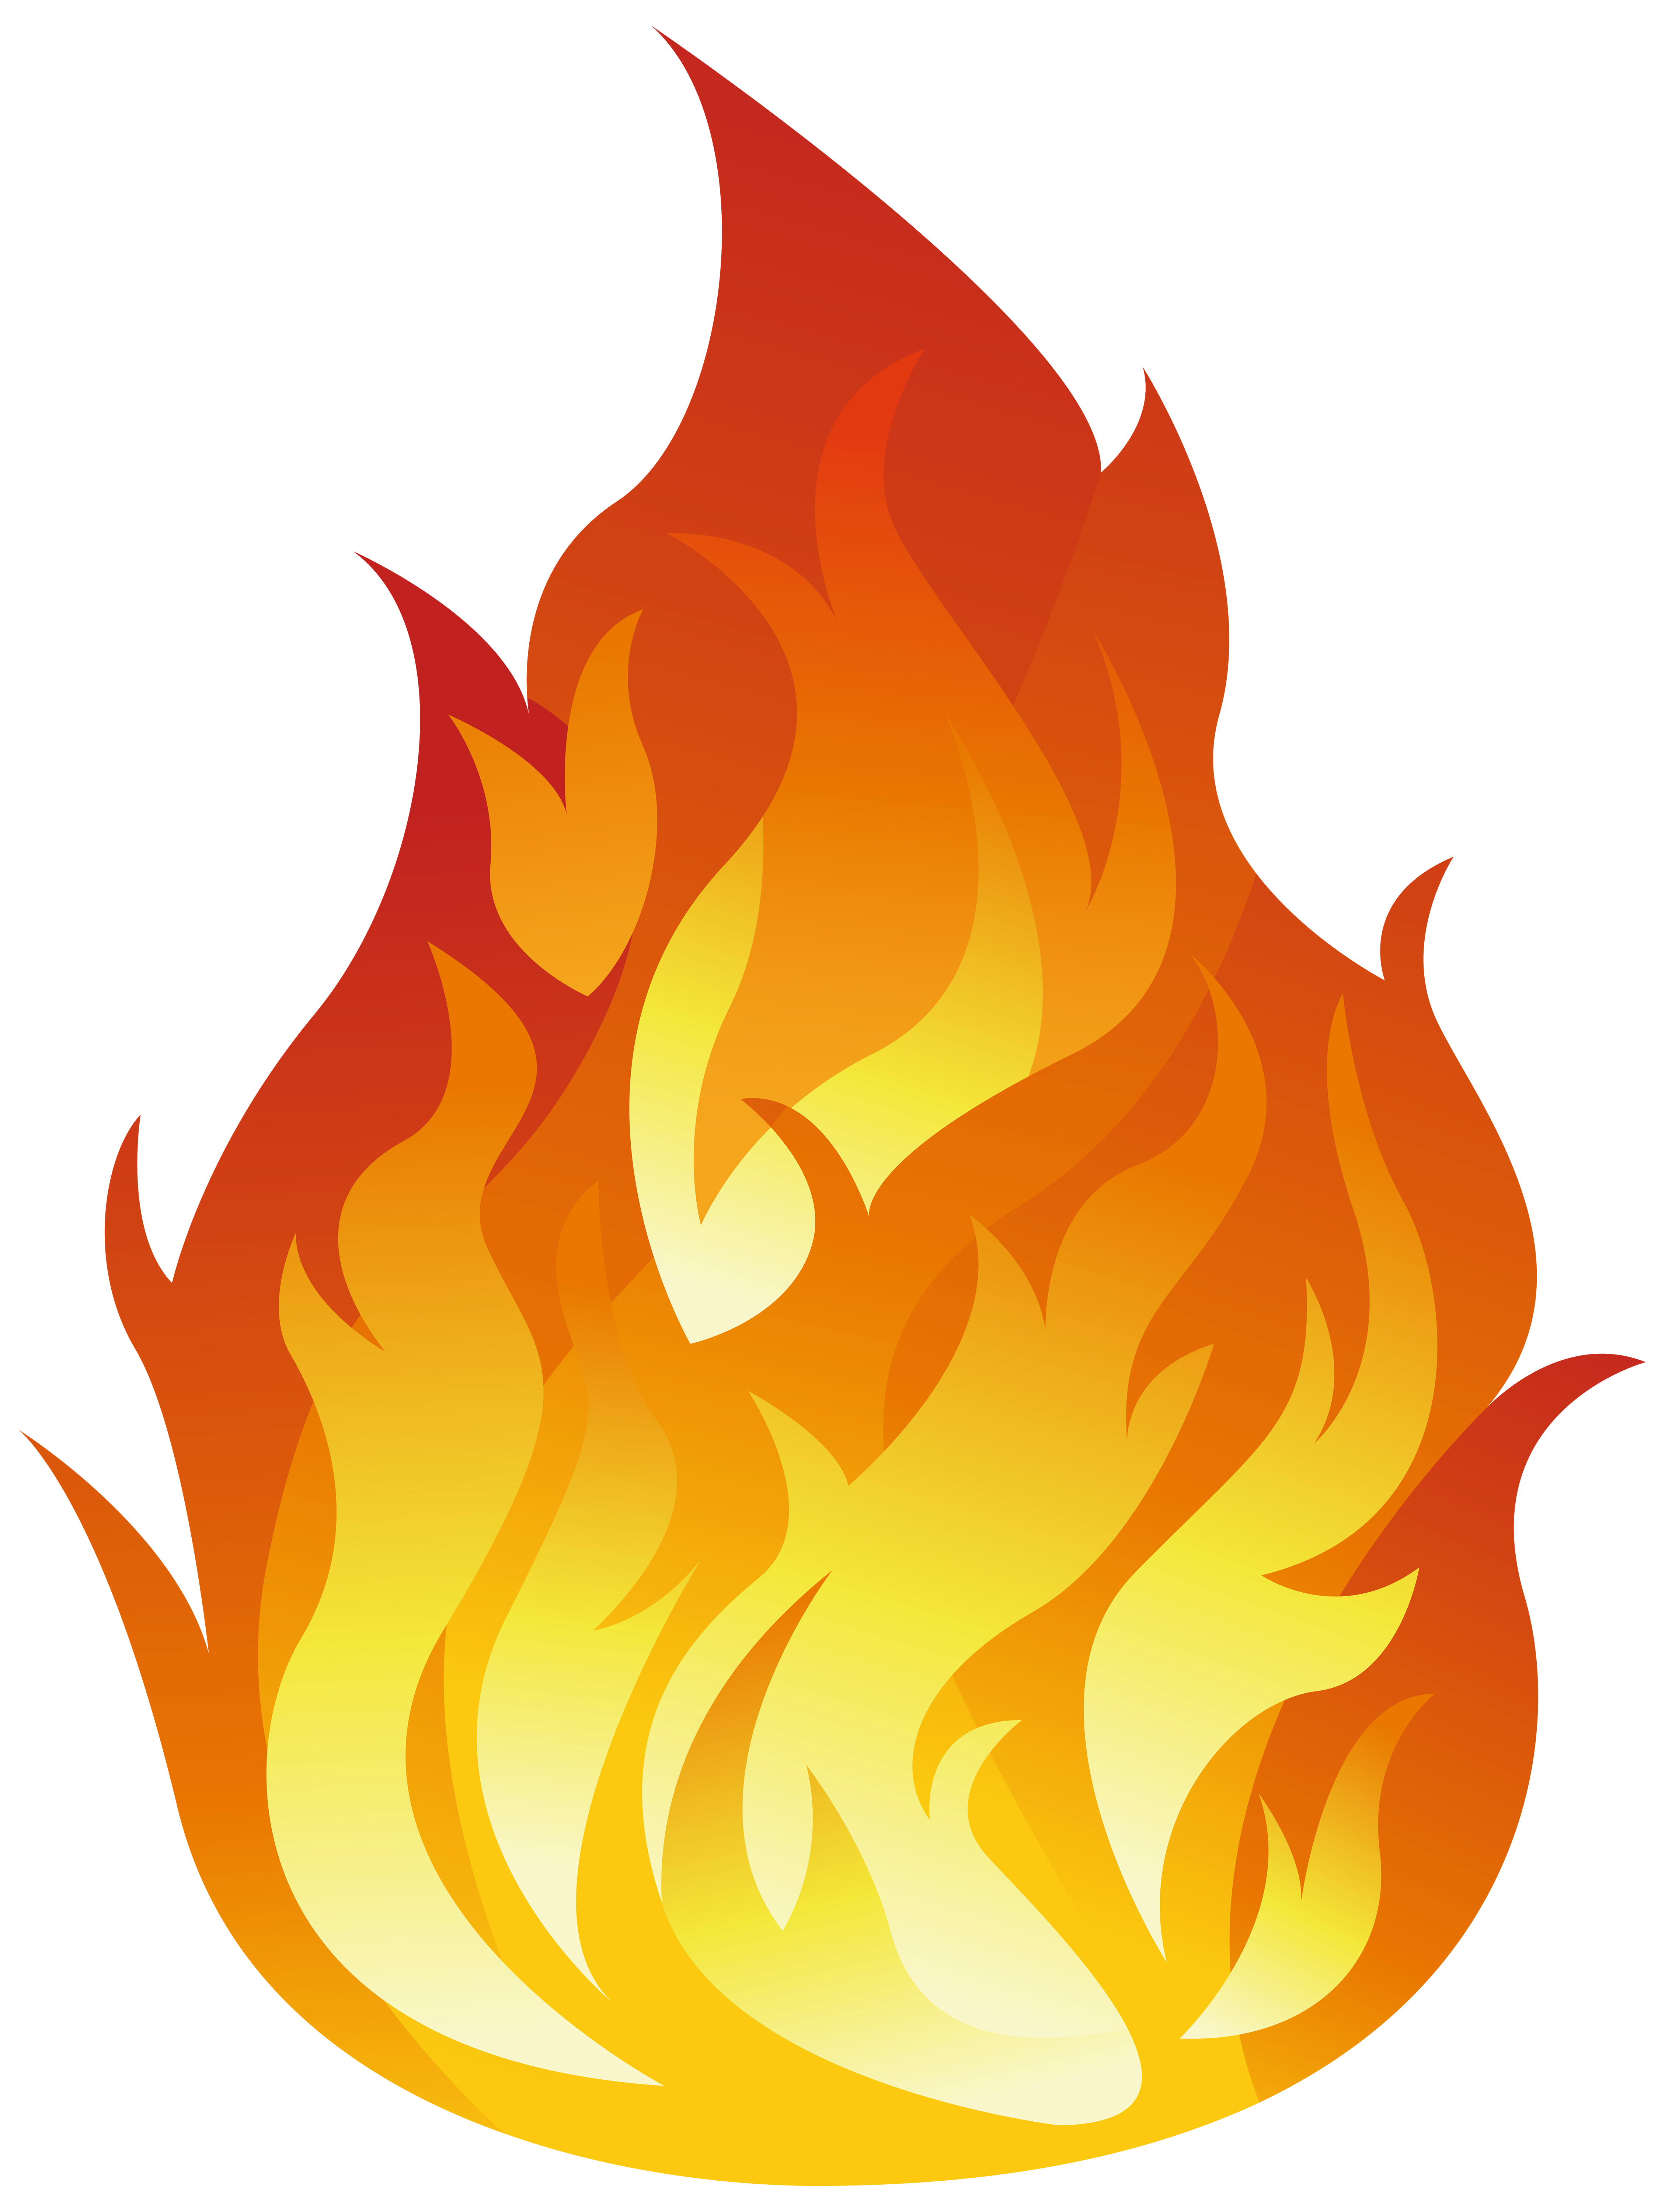 Flame transparent png clip. Vector campfire white background vector royalty free library